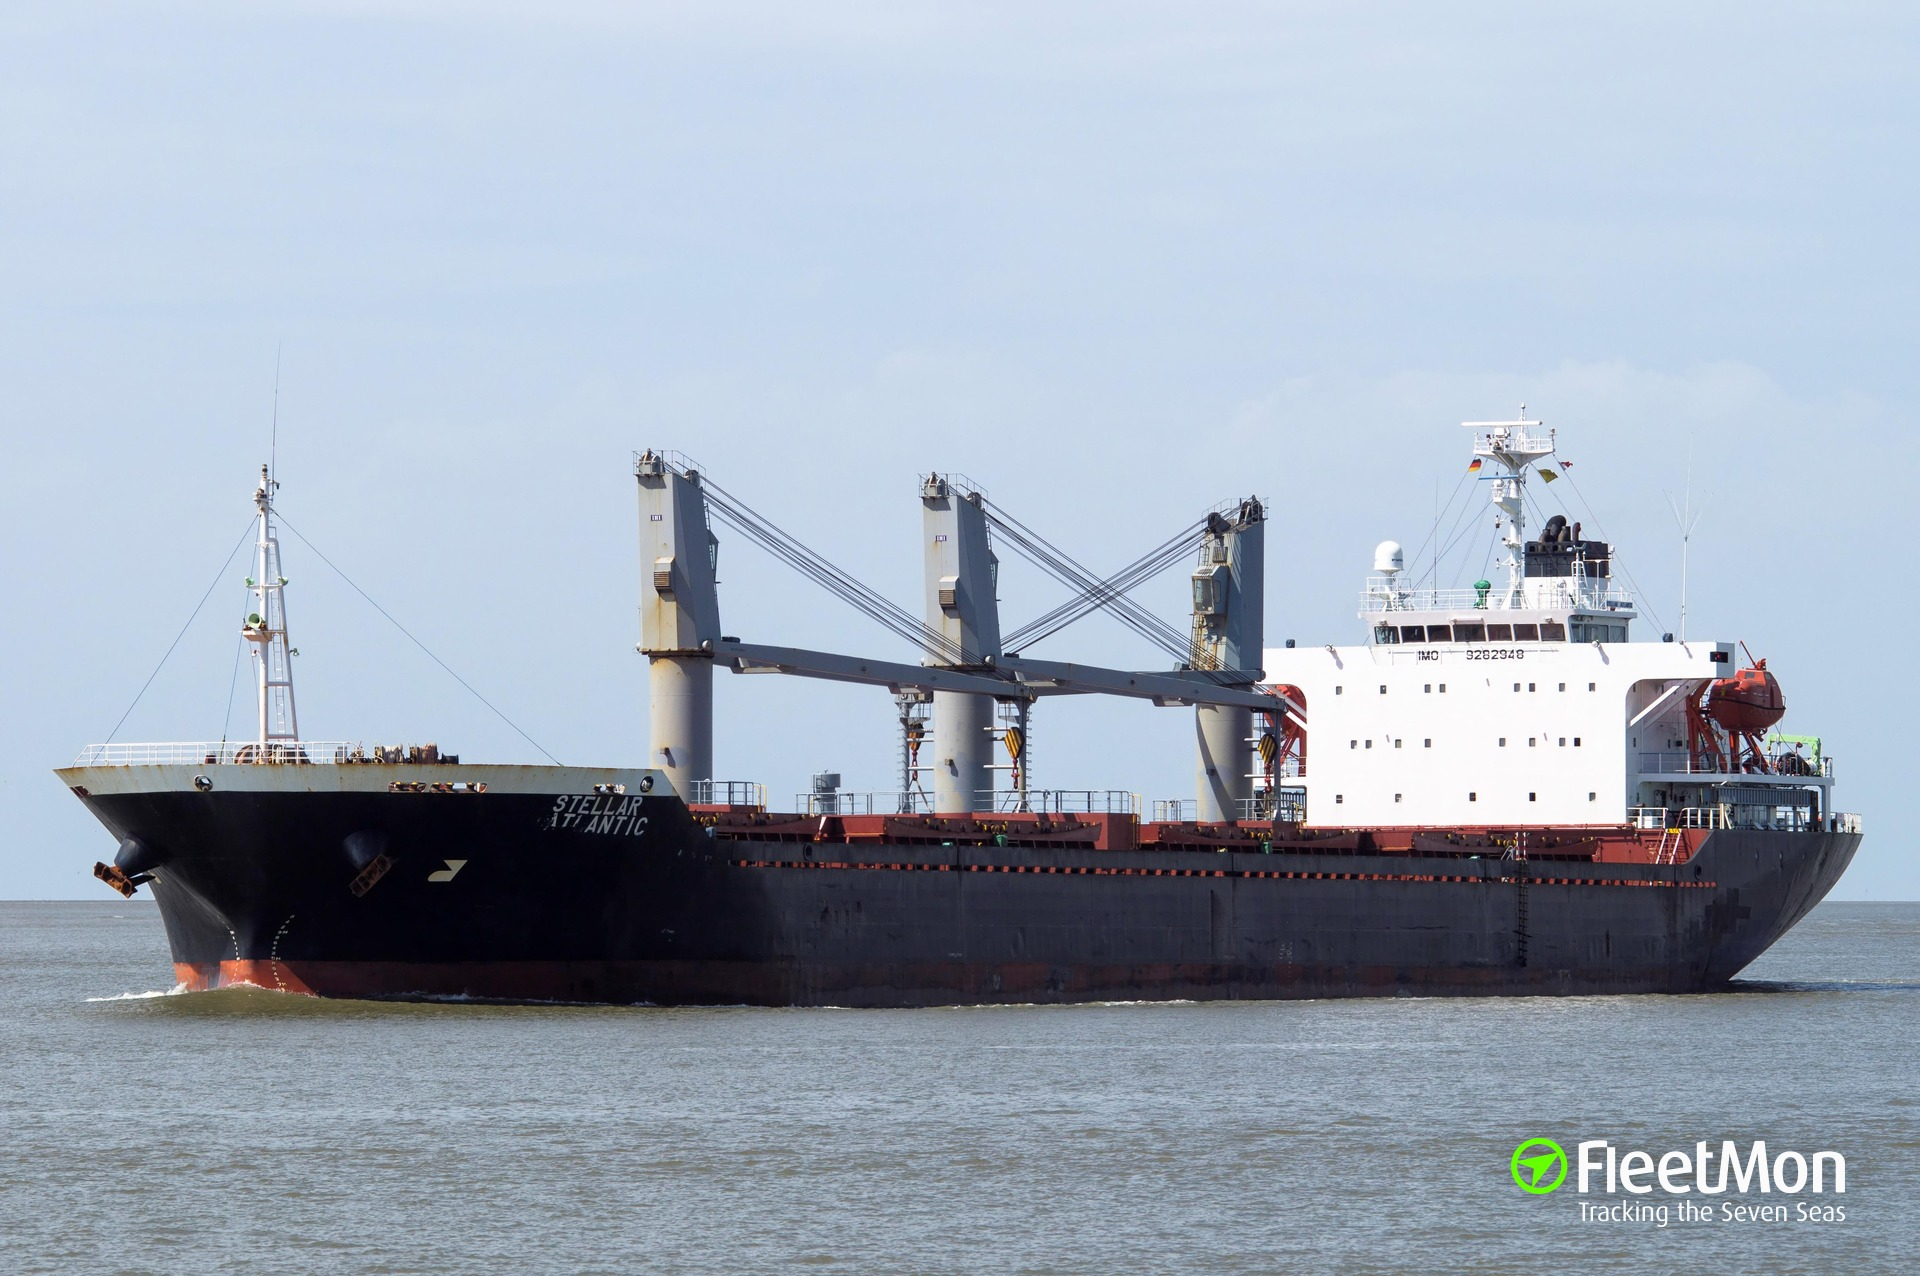 Bulk carrier lost anchor while approaching Kaliningrad, Baltic sea